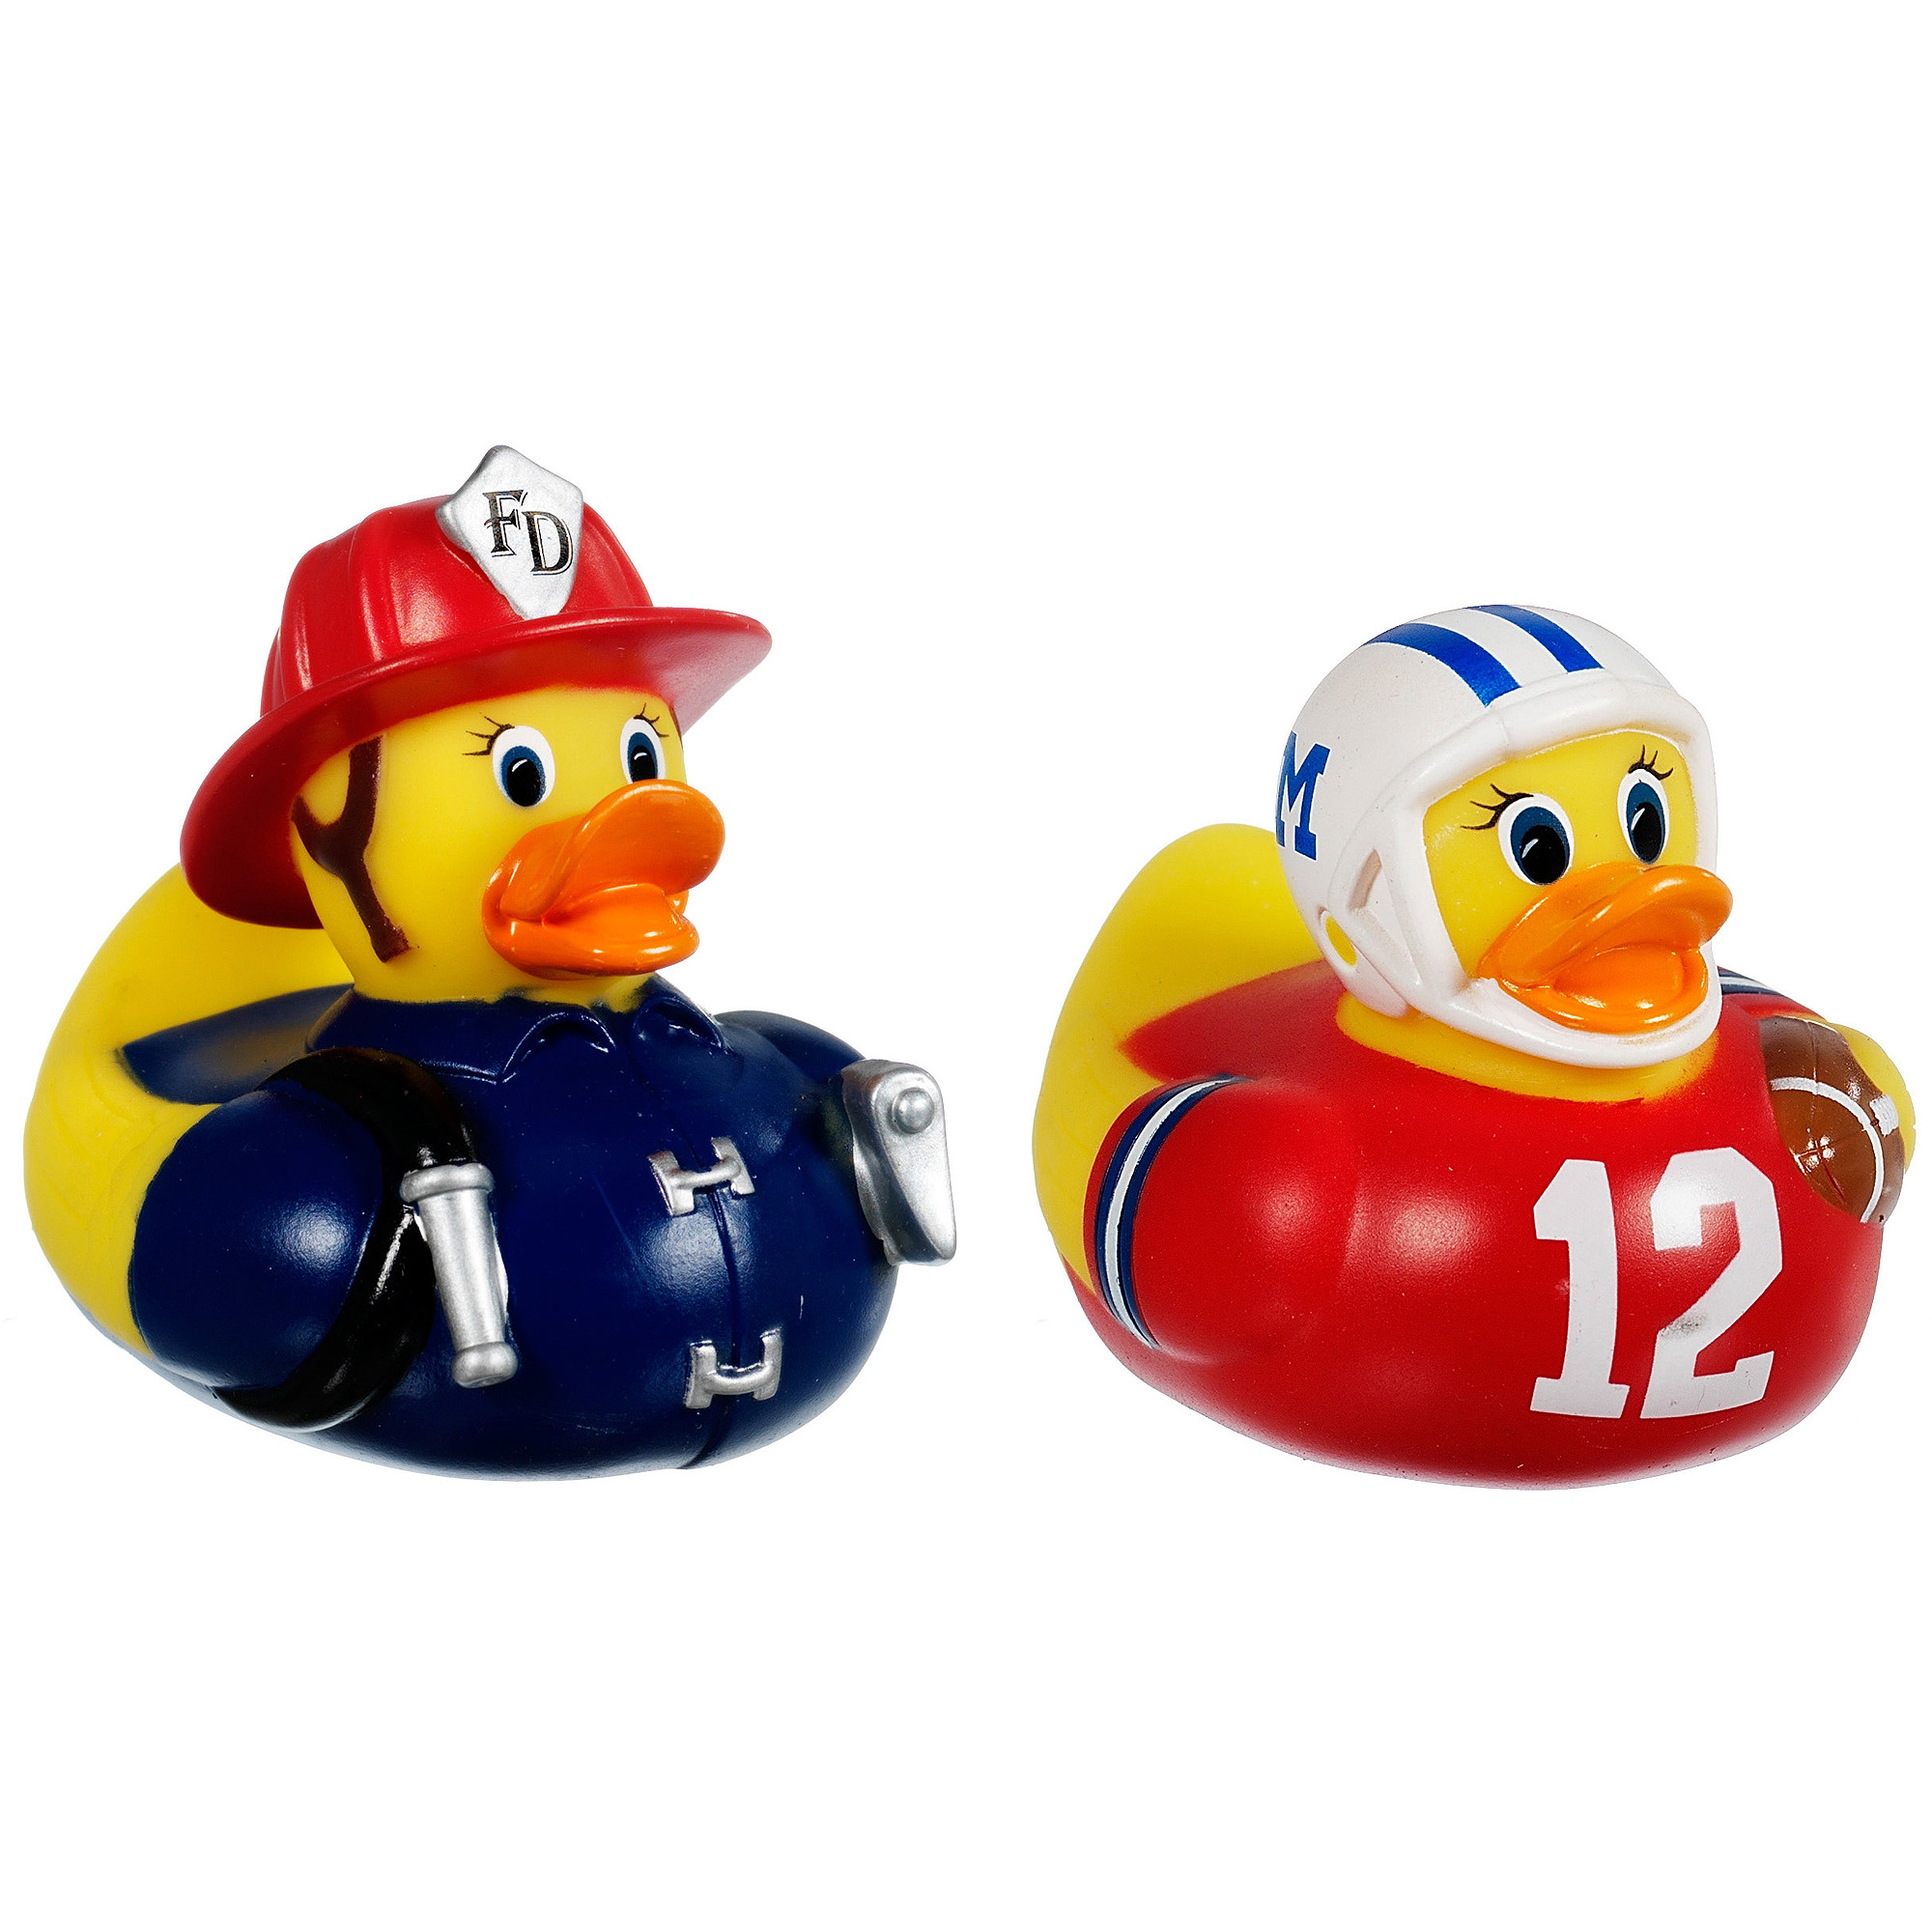 Munchkin White Hot Super Safety Bath Ducky, 2 Pack, Fireman and Football